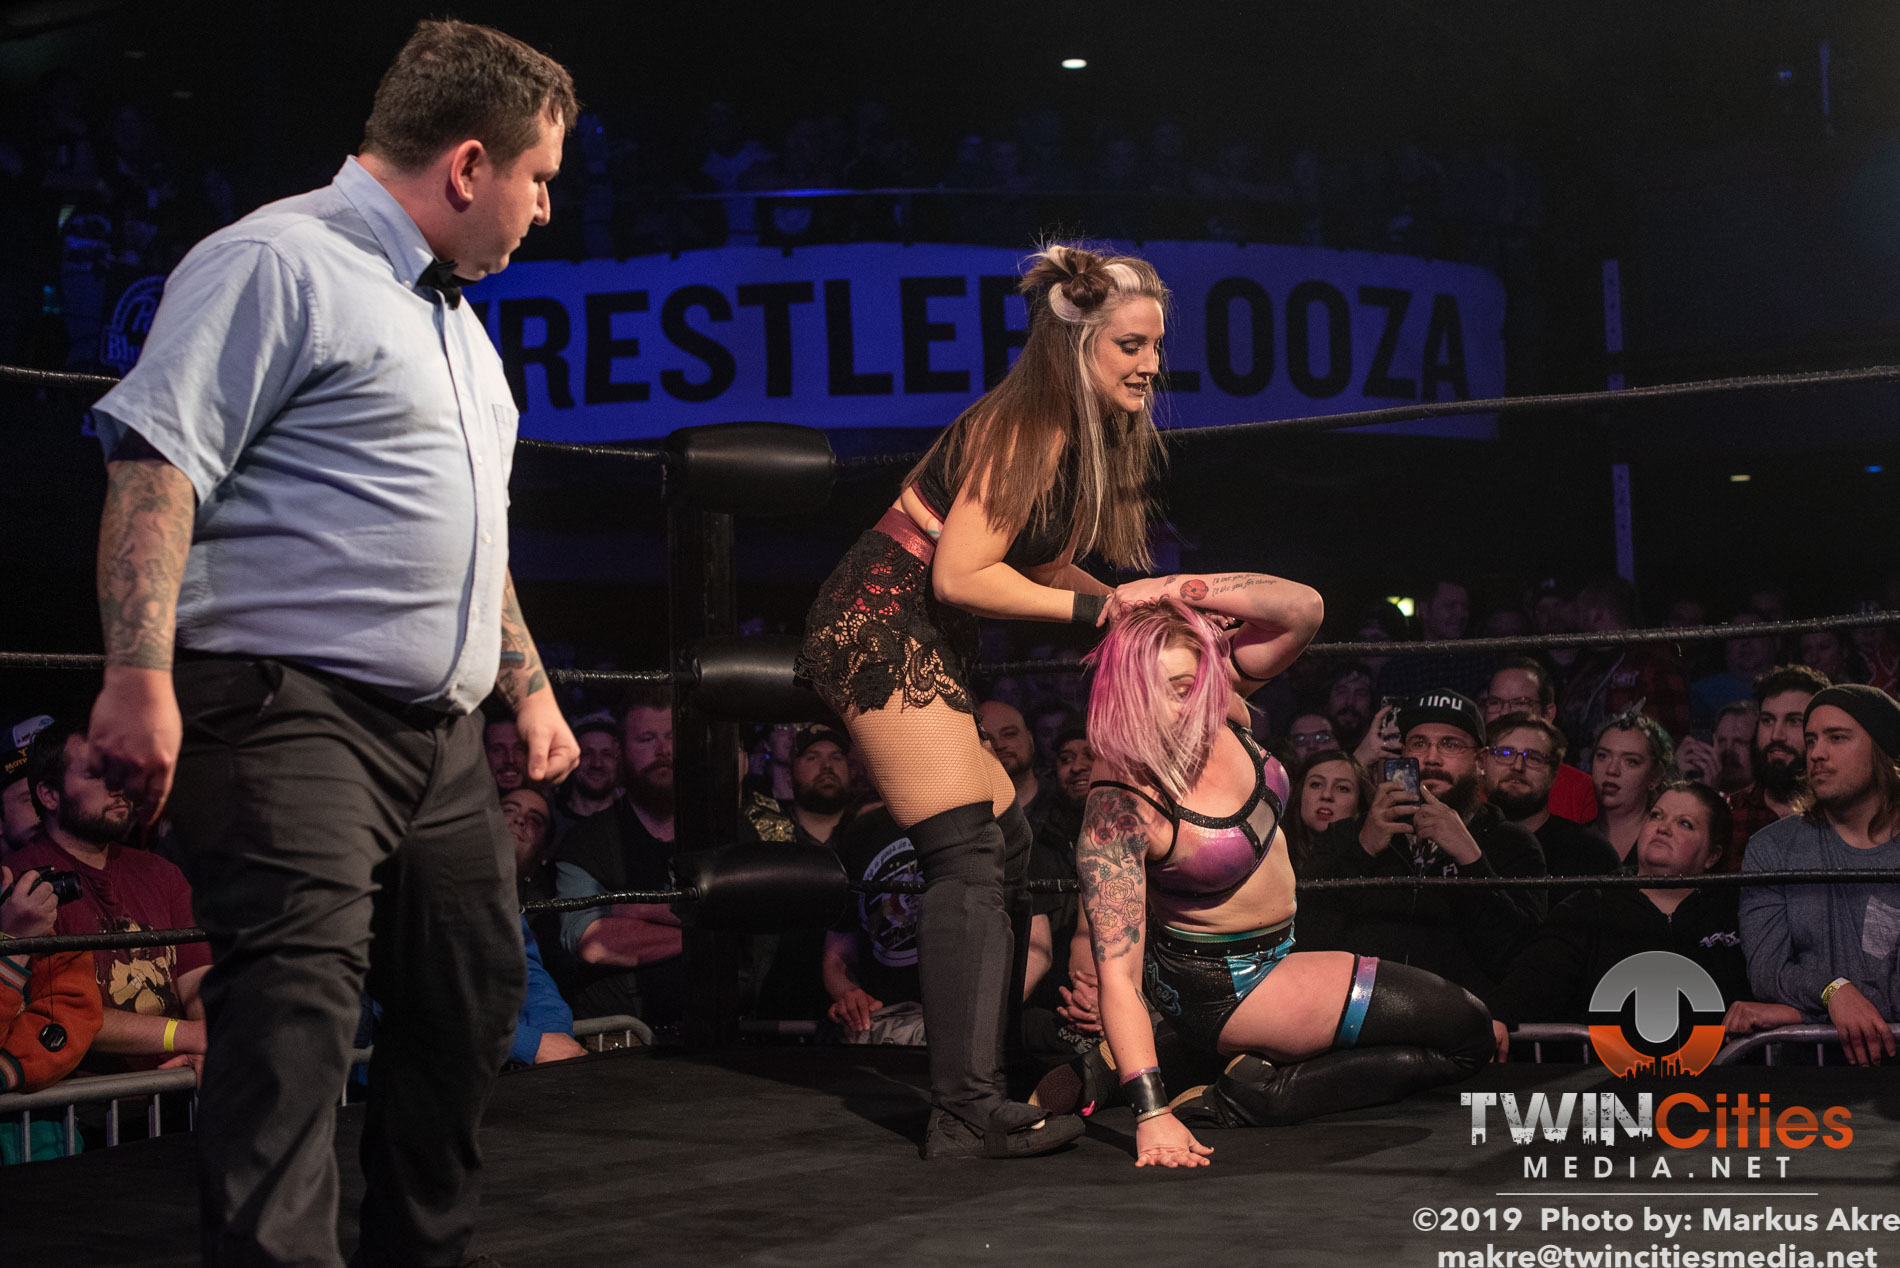 Wrestlepalooza - Match 2-5